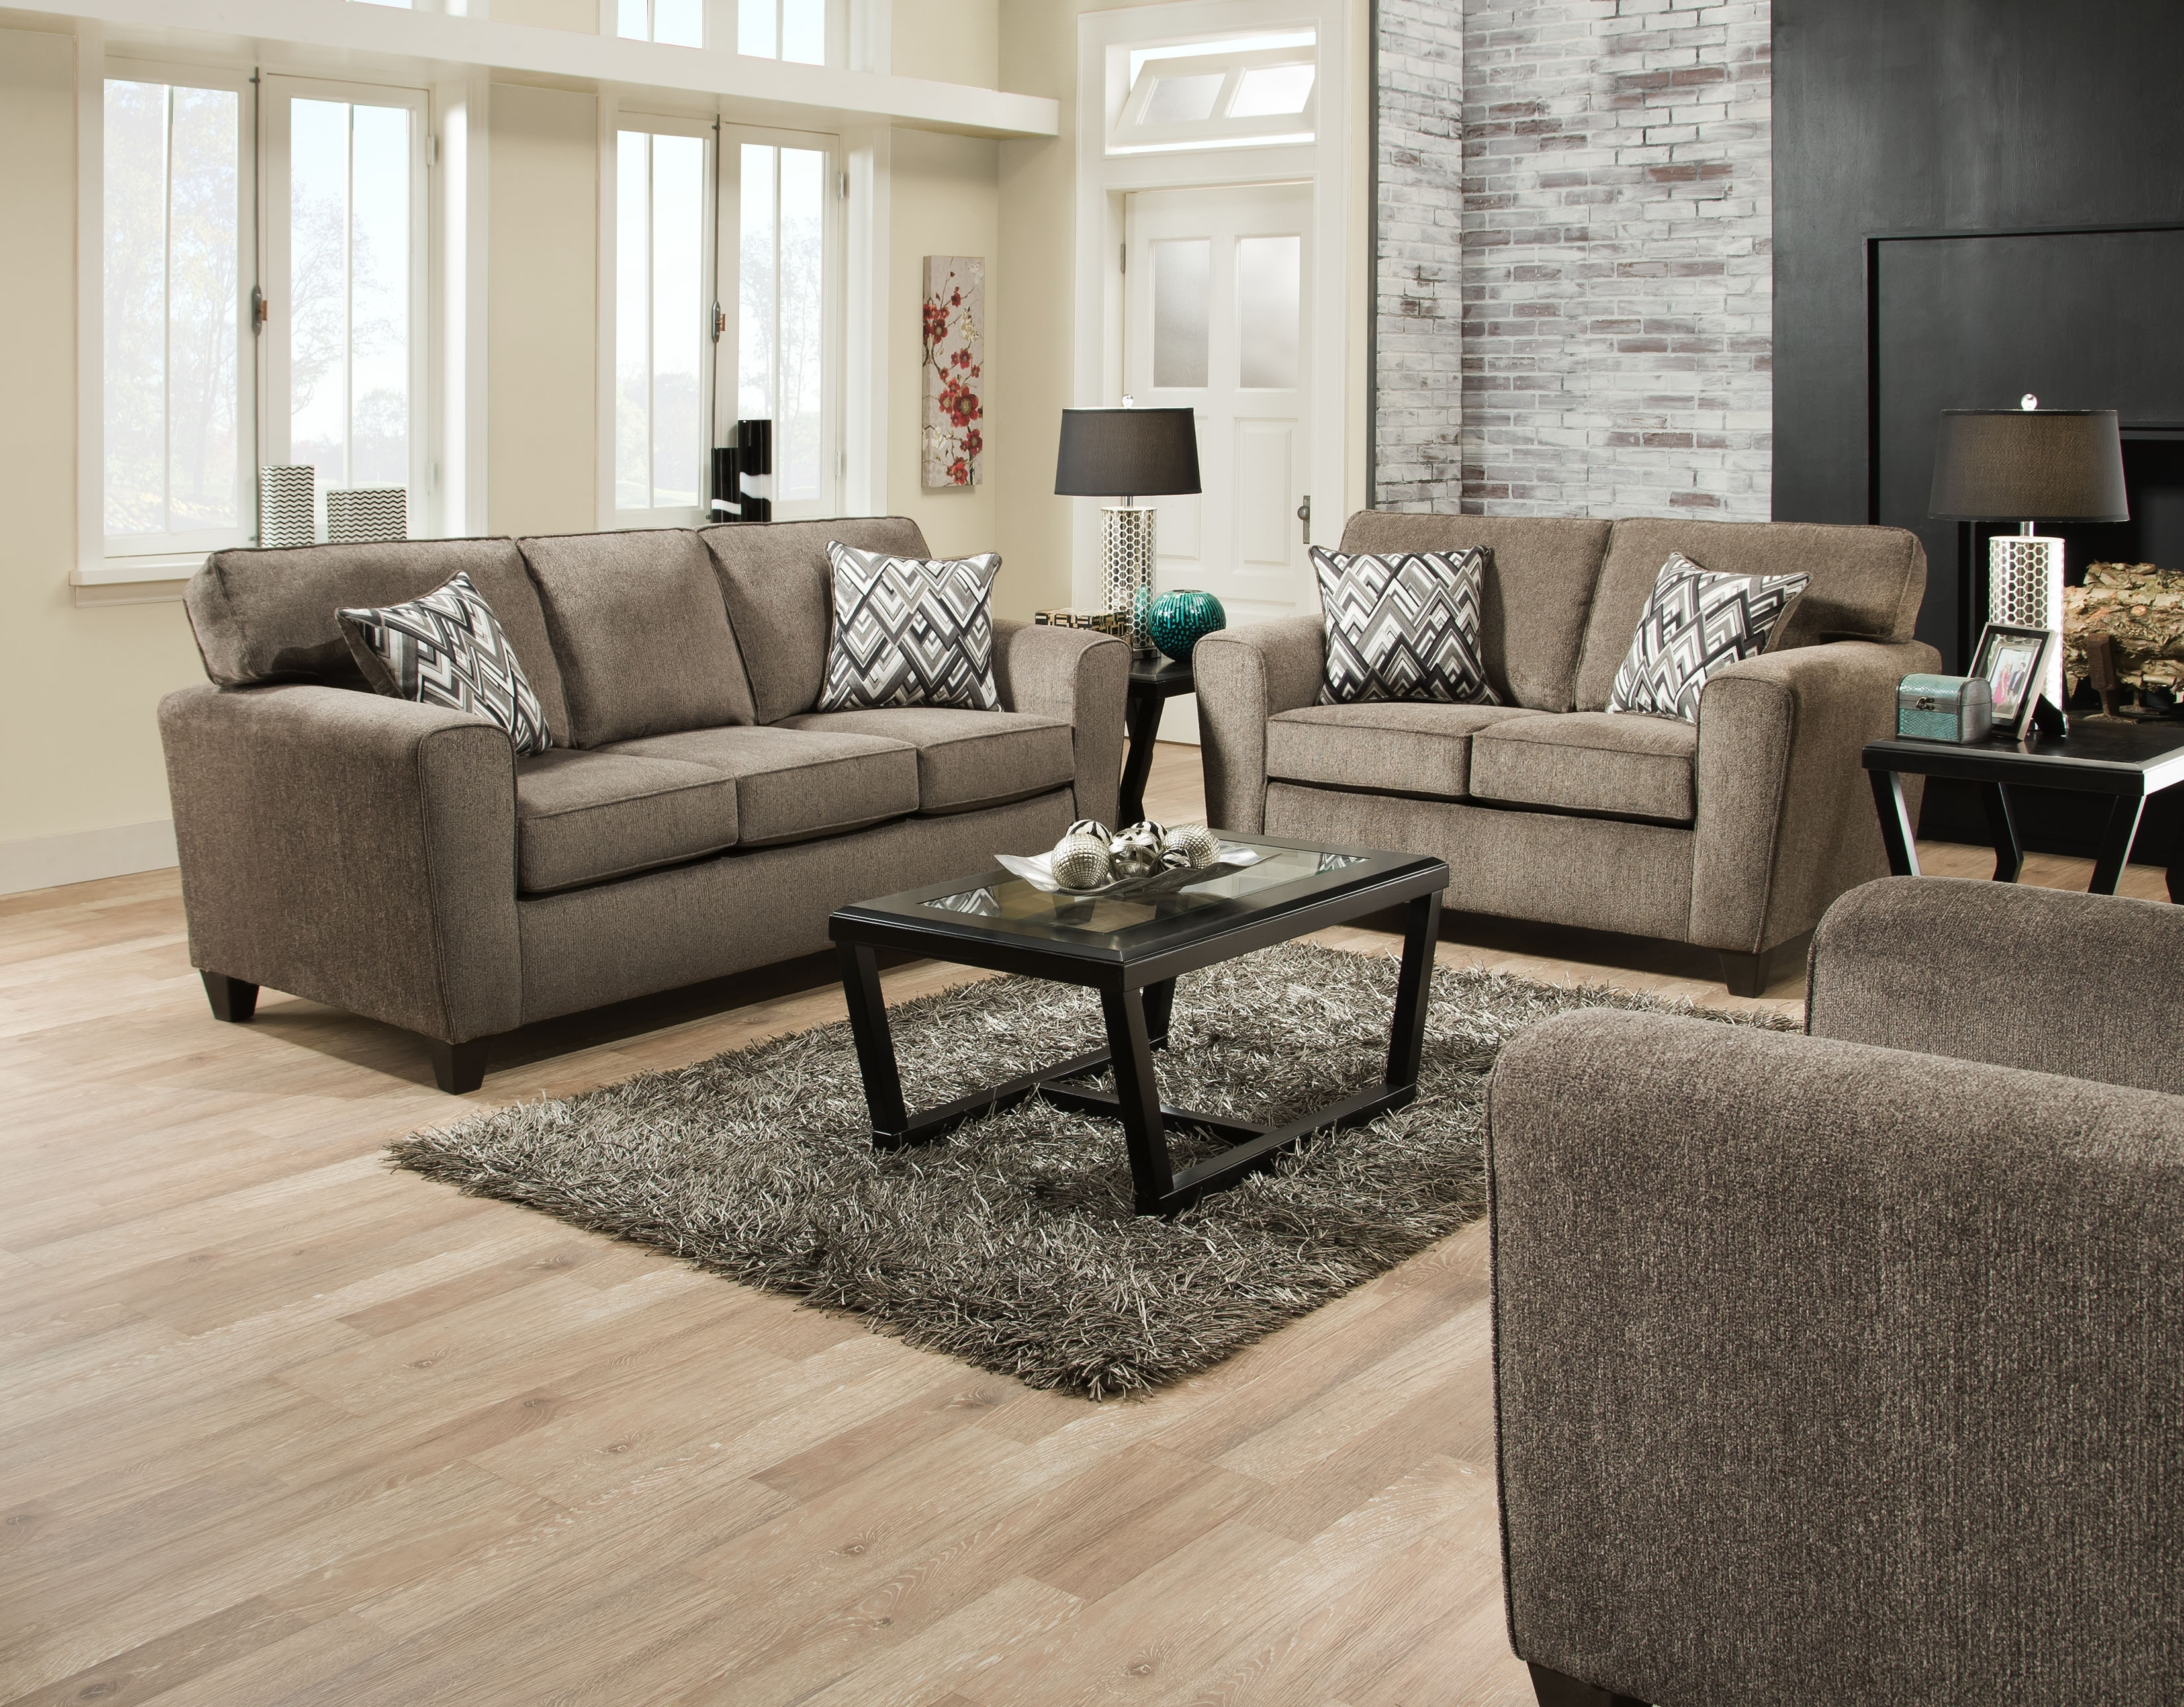 Living Room – Crazy Joe's Best Deal Furniture throughout Janesville Wi Sectional Sofas (Image 6 of 10)